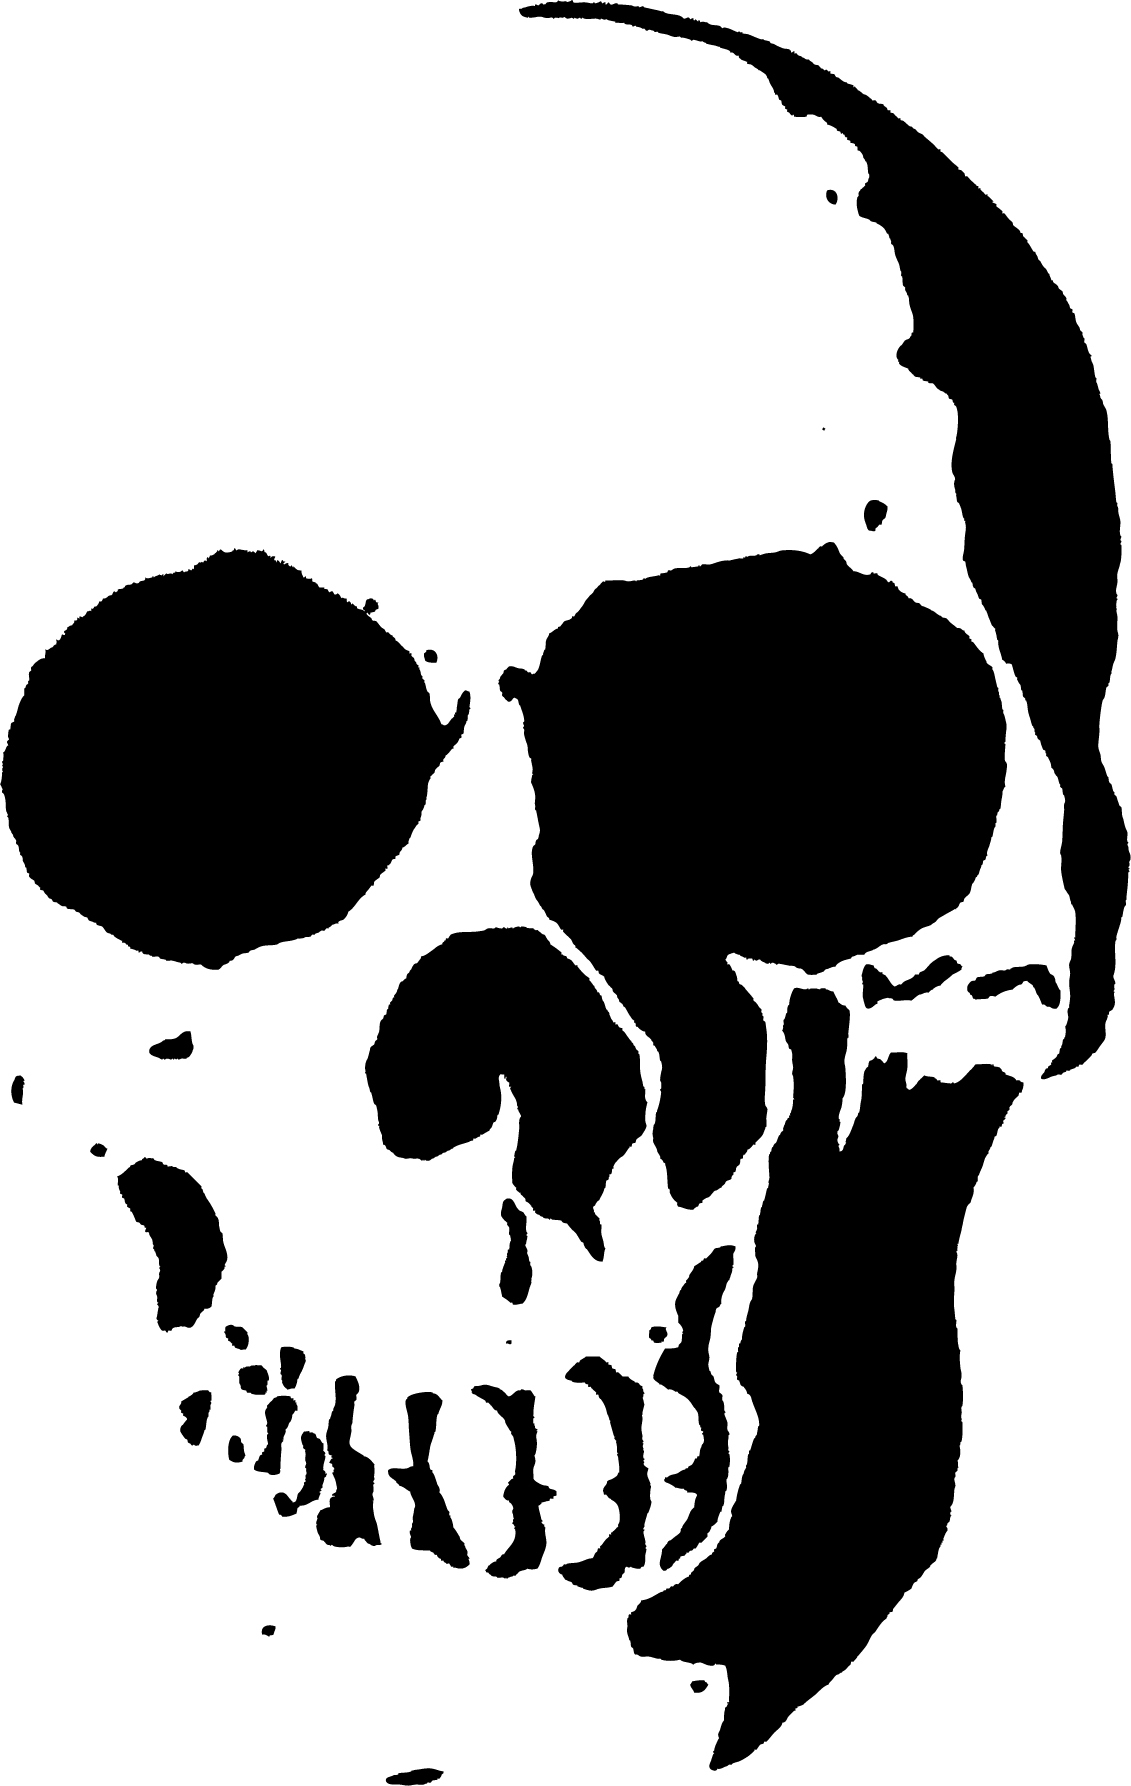 23 Free Skull Stencil Printable Templates   Guide Patterns - Free Printable Airbrush Stencils